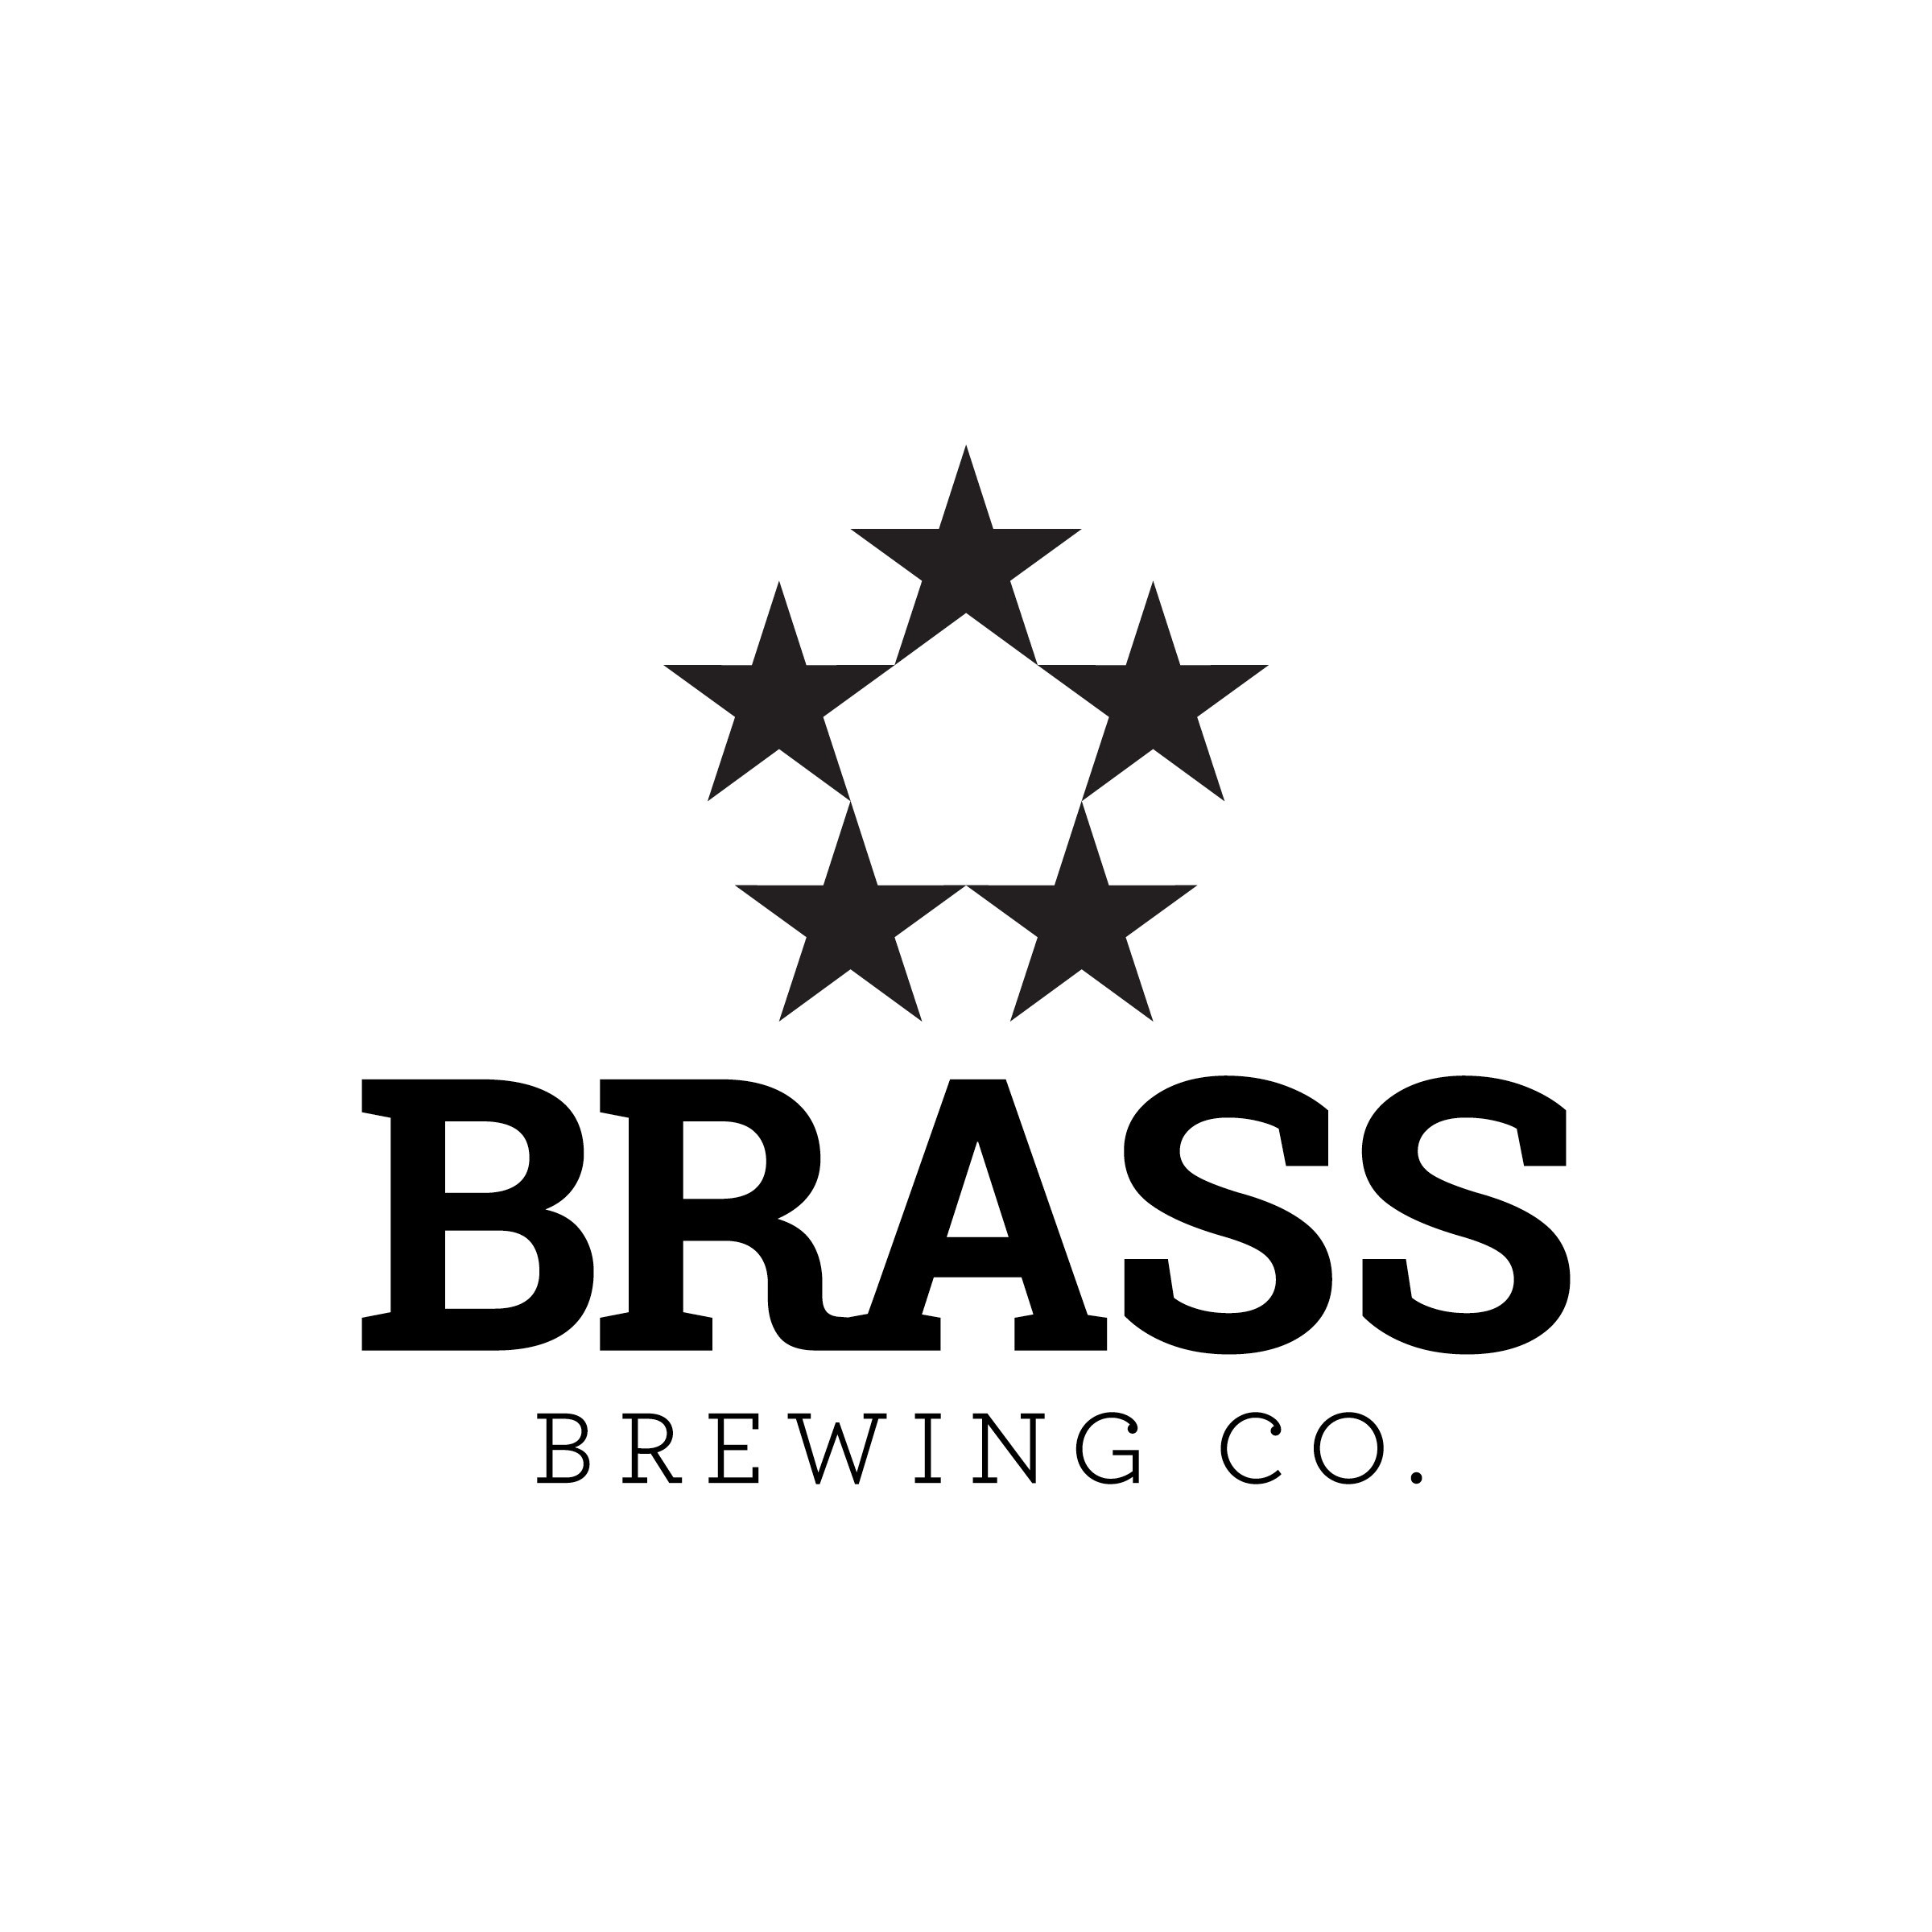 Brass Brewing Co.